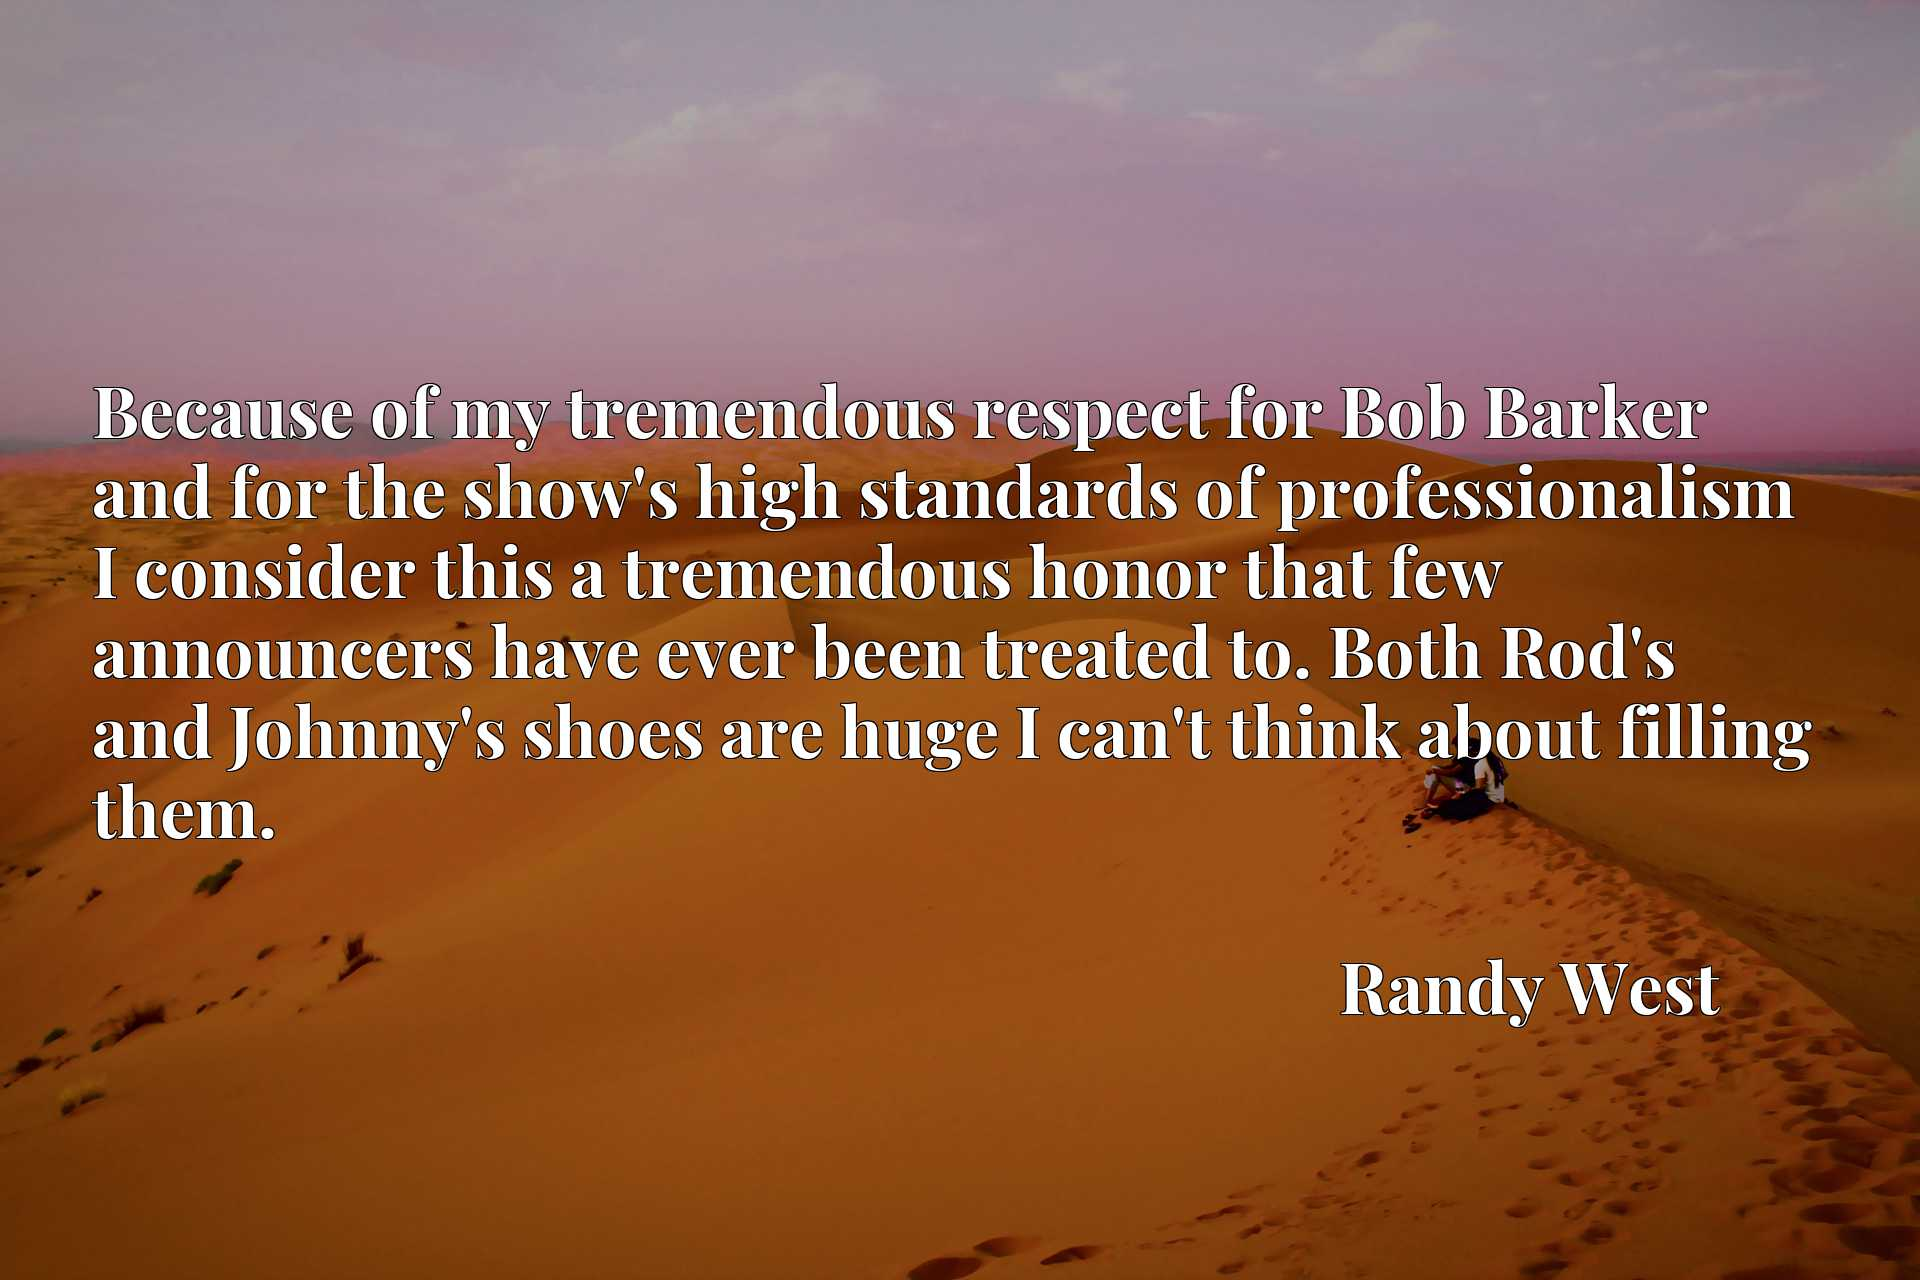 Because of my tremendous respect for Bob Barker and for the show's high standards of professionalism I consider this a tremendous honor that few announcers have ever been treated to. Both Rod's and Johnny's shoes are huge I can't think about filling them.